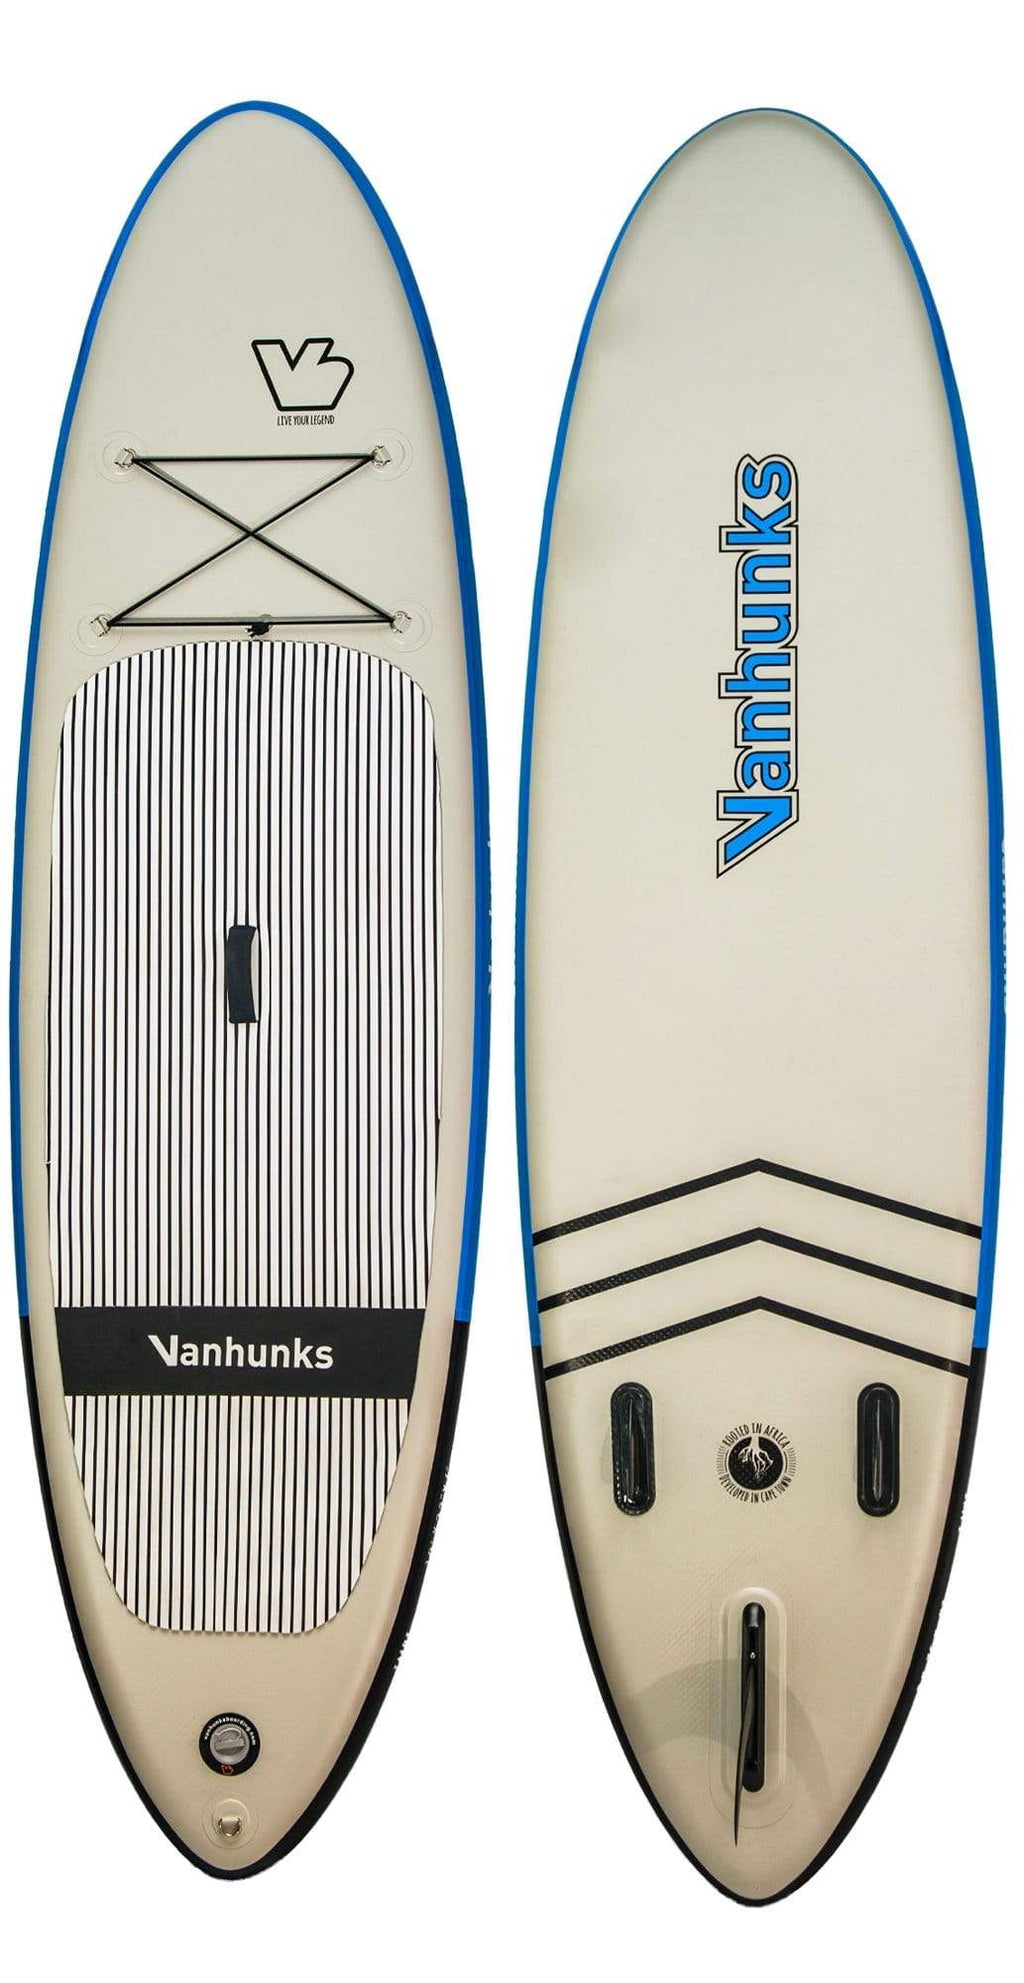 Vanhunks Impi Inflatable SUP